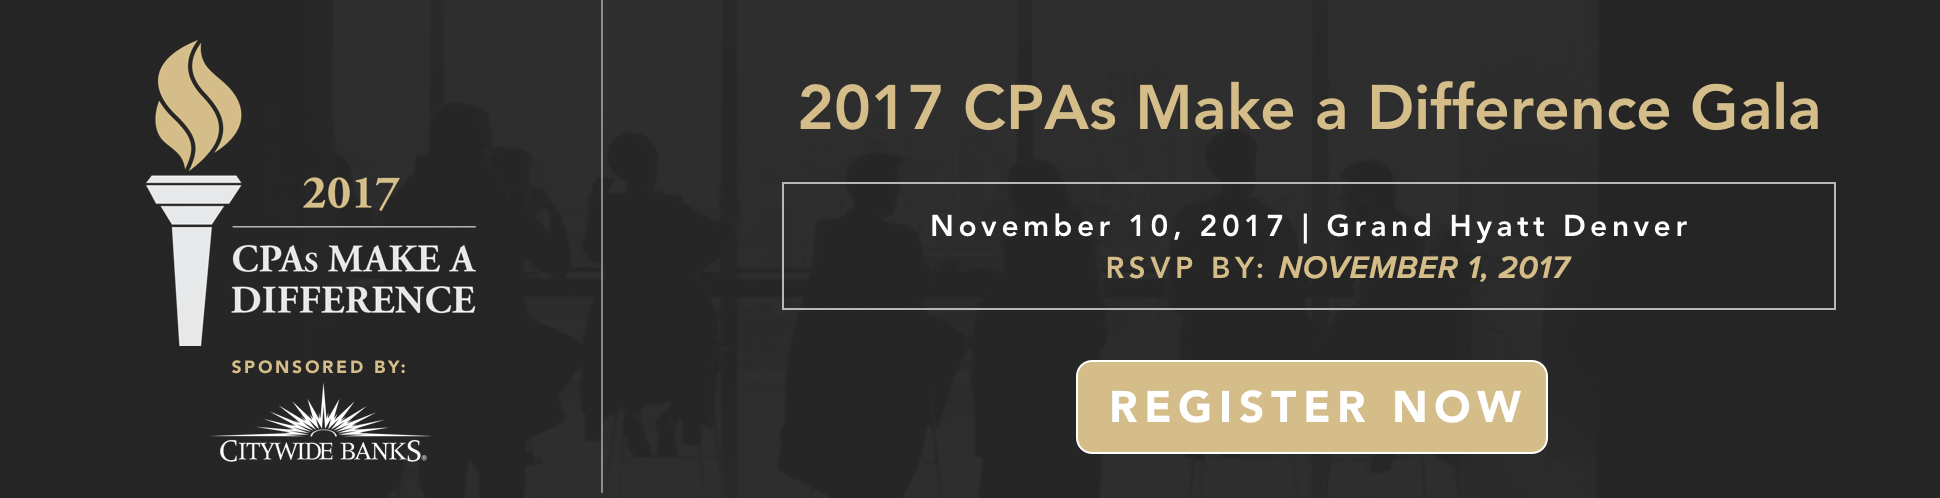 2017 CPAs Make a Difference Gala